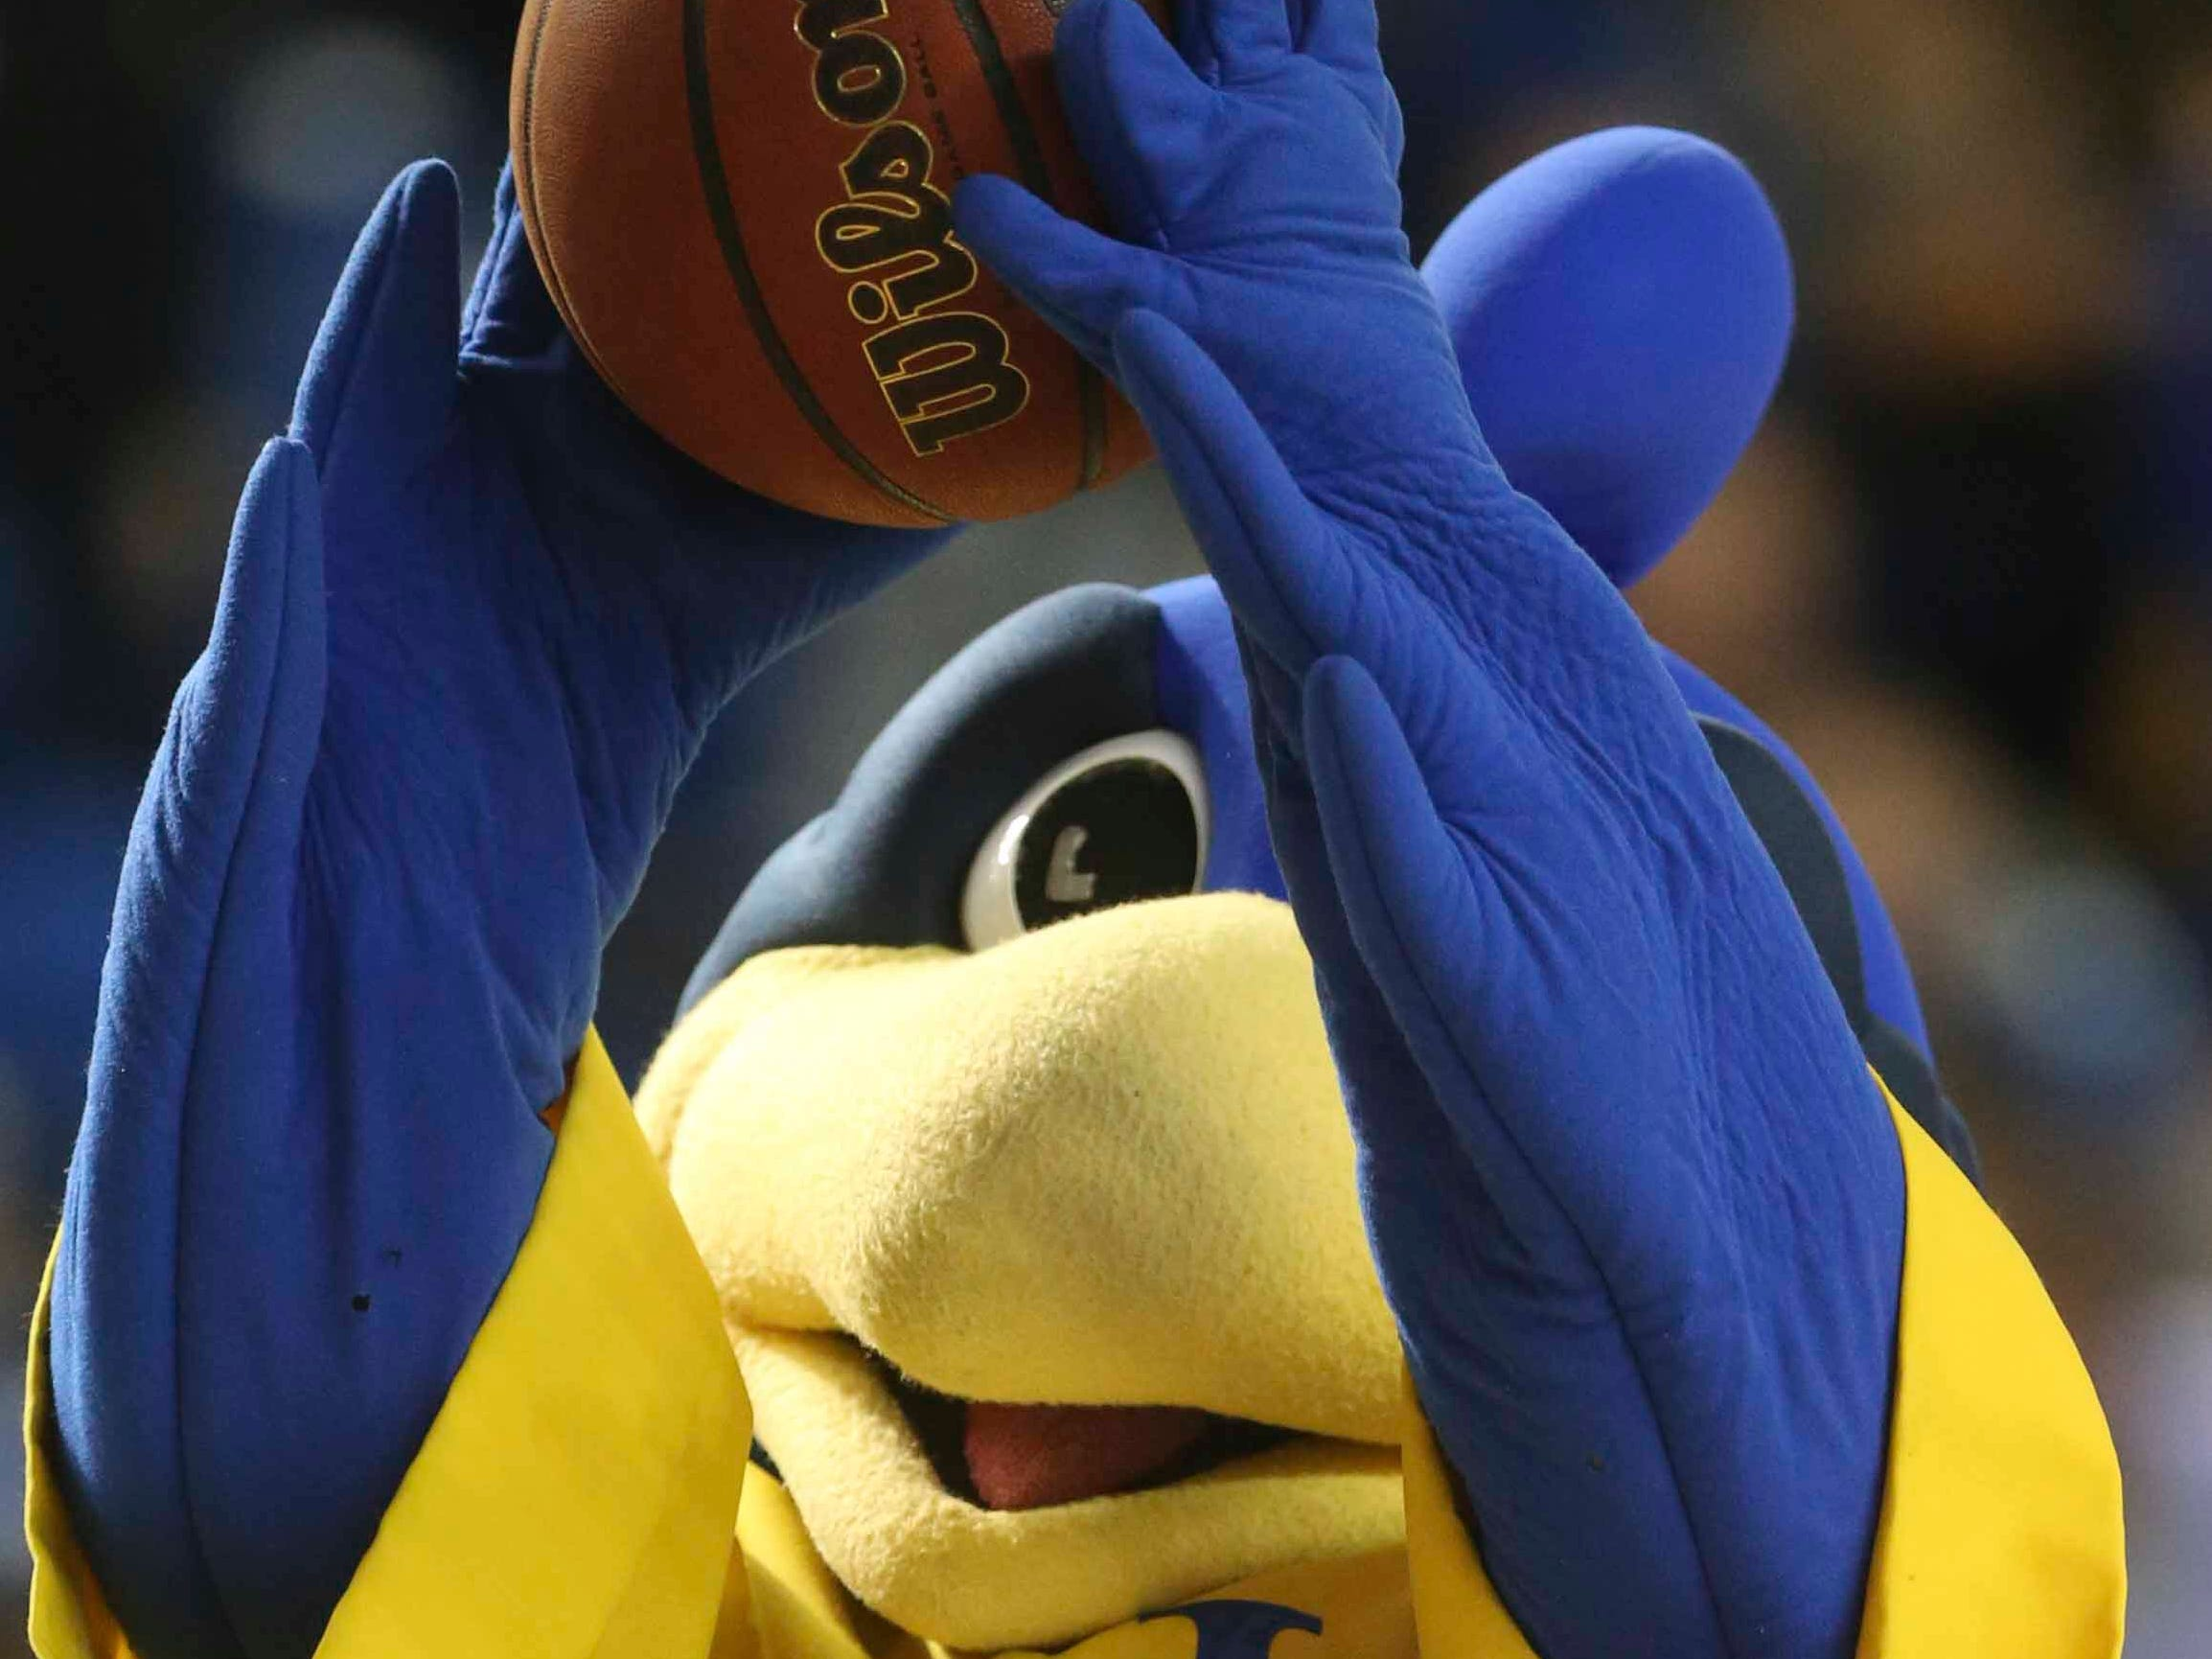 YouDee sizes up a shot during a break in the second half of Delaware's 70-66 win at the Bob Carpenter Center Saturday.